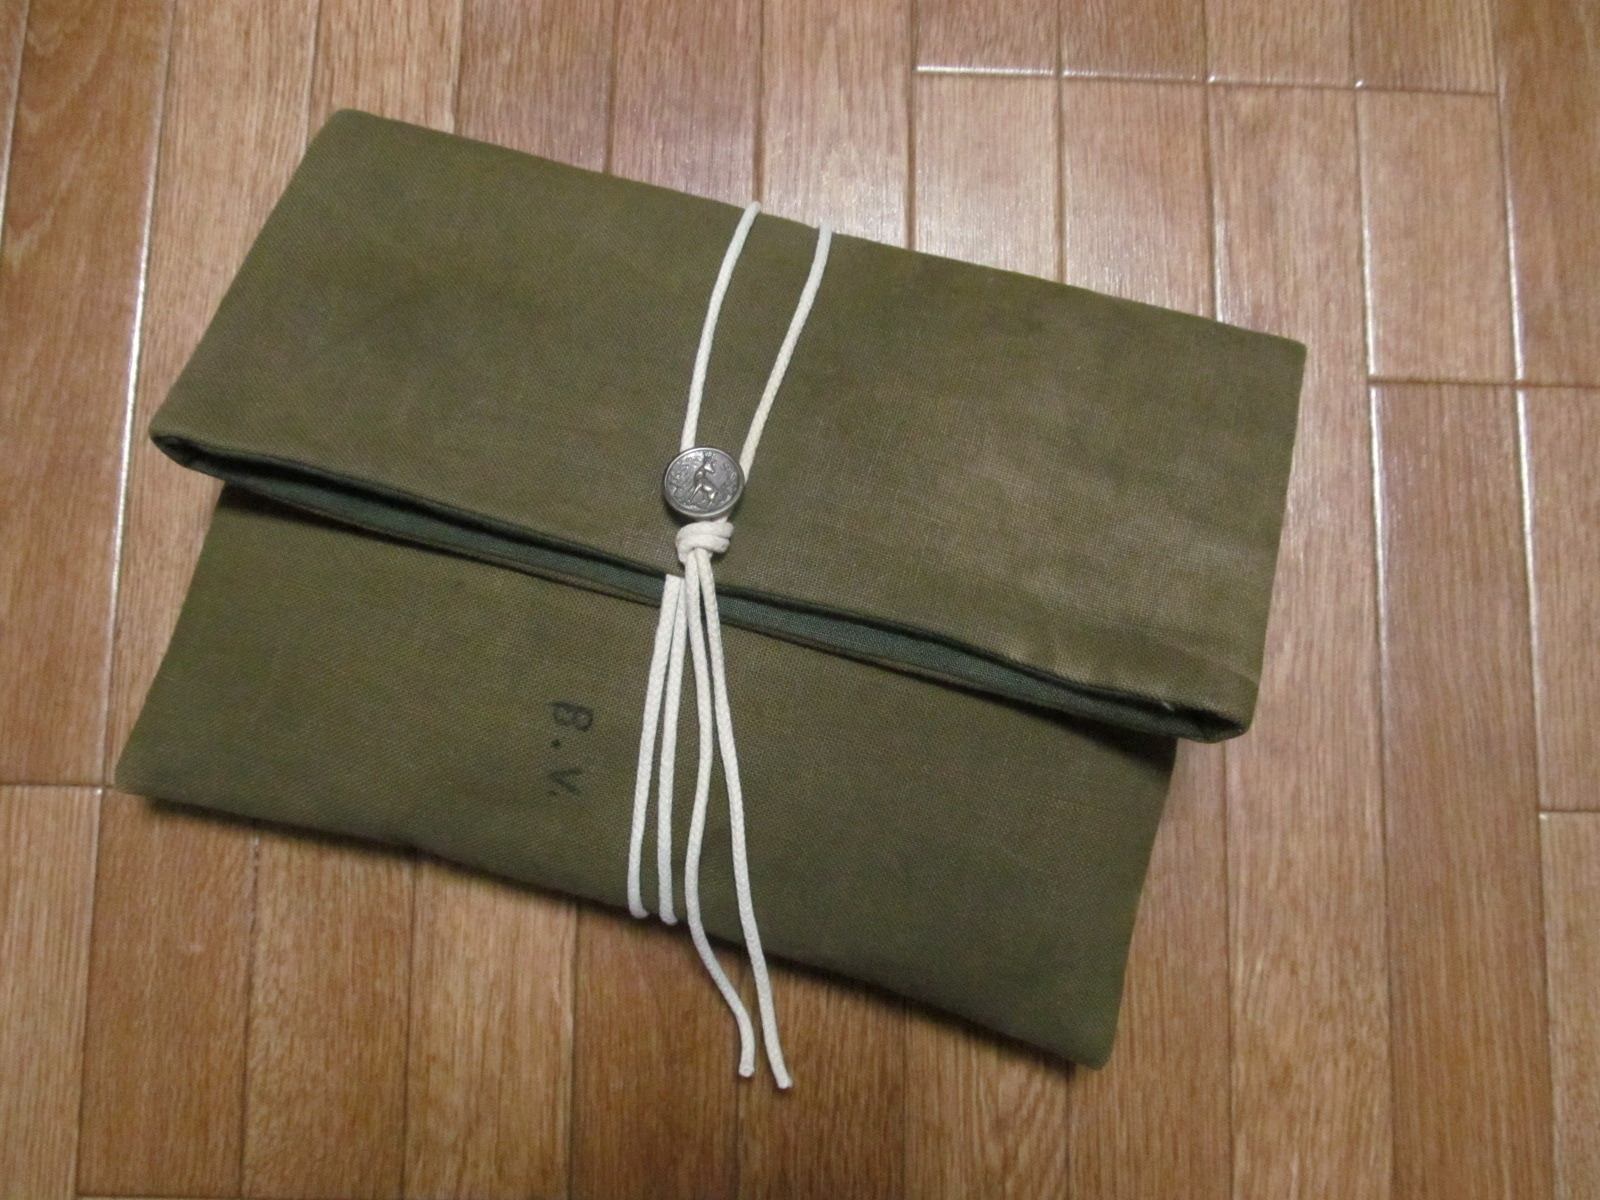 60S MILITARY STYLE CLUTCH BAG